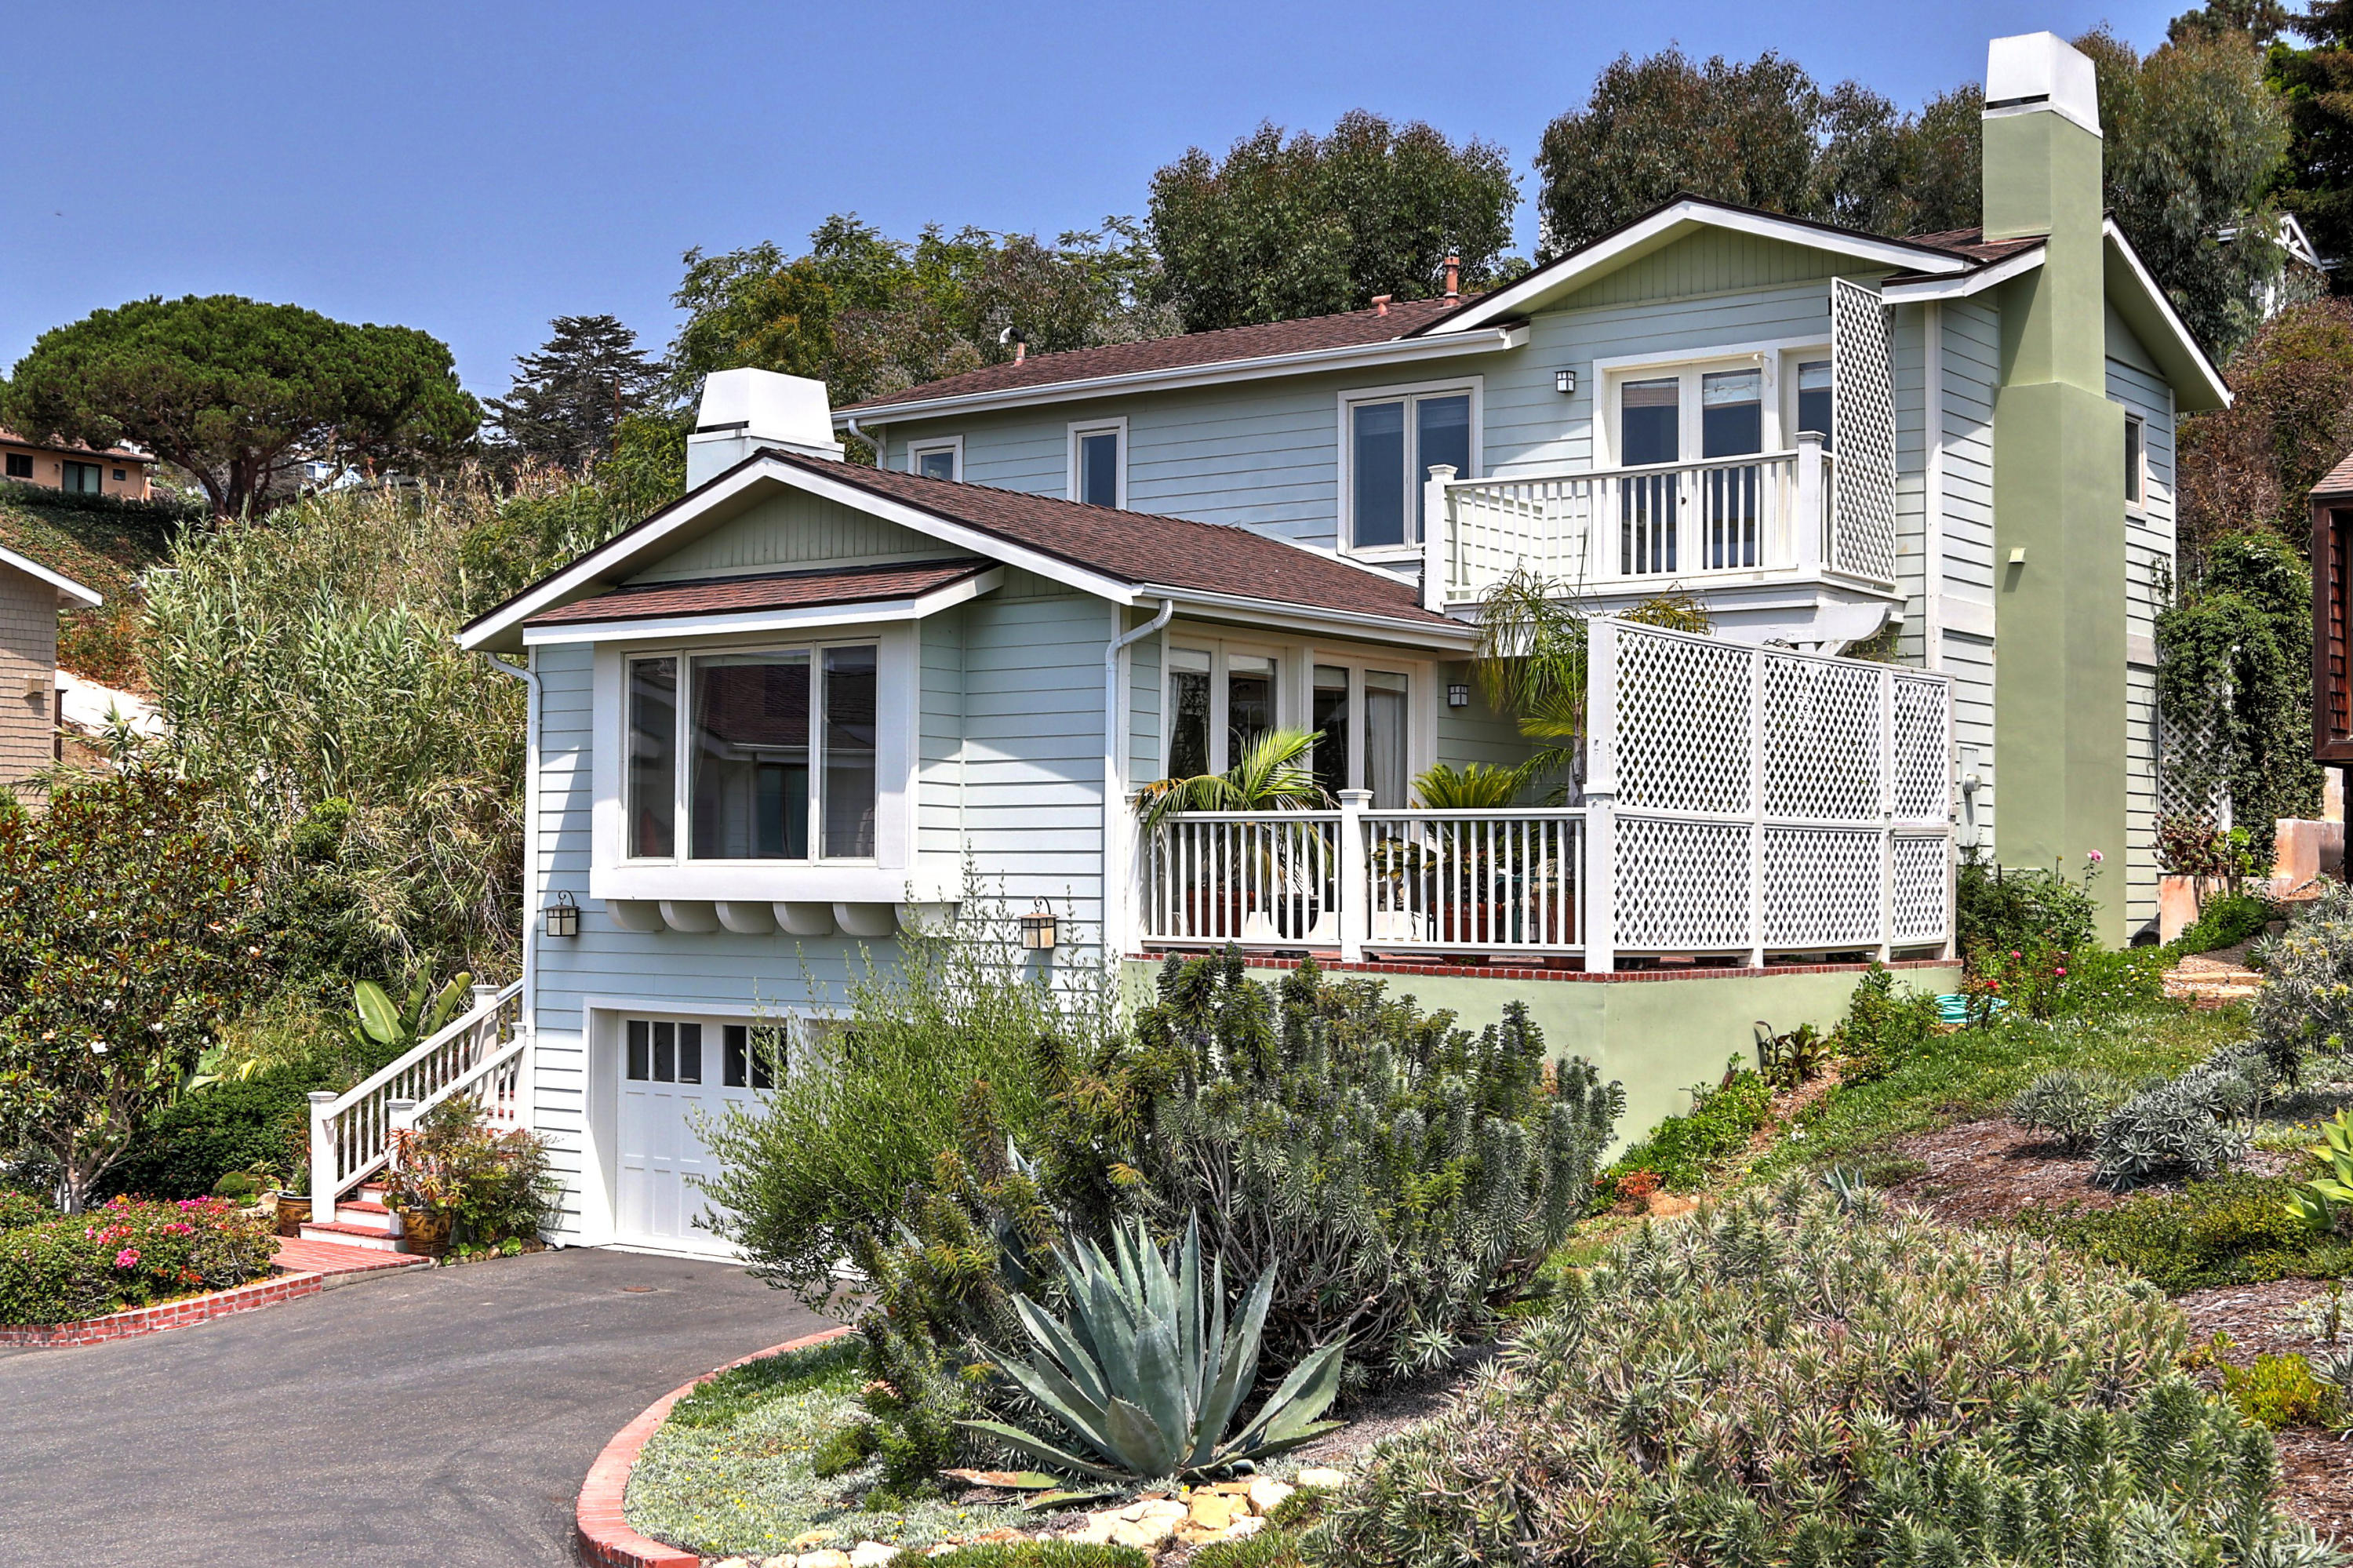 Property photo for 2420 Golden Gate Ave Summerland, California 93067 - 16-2863